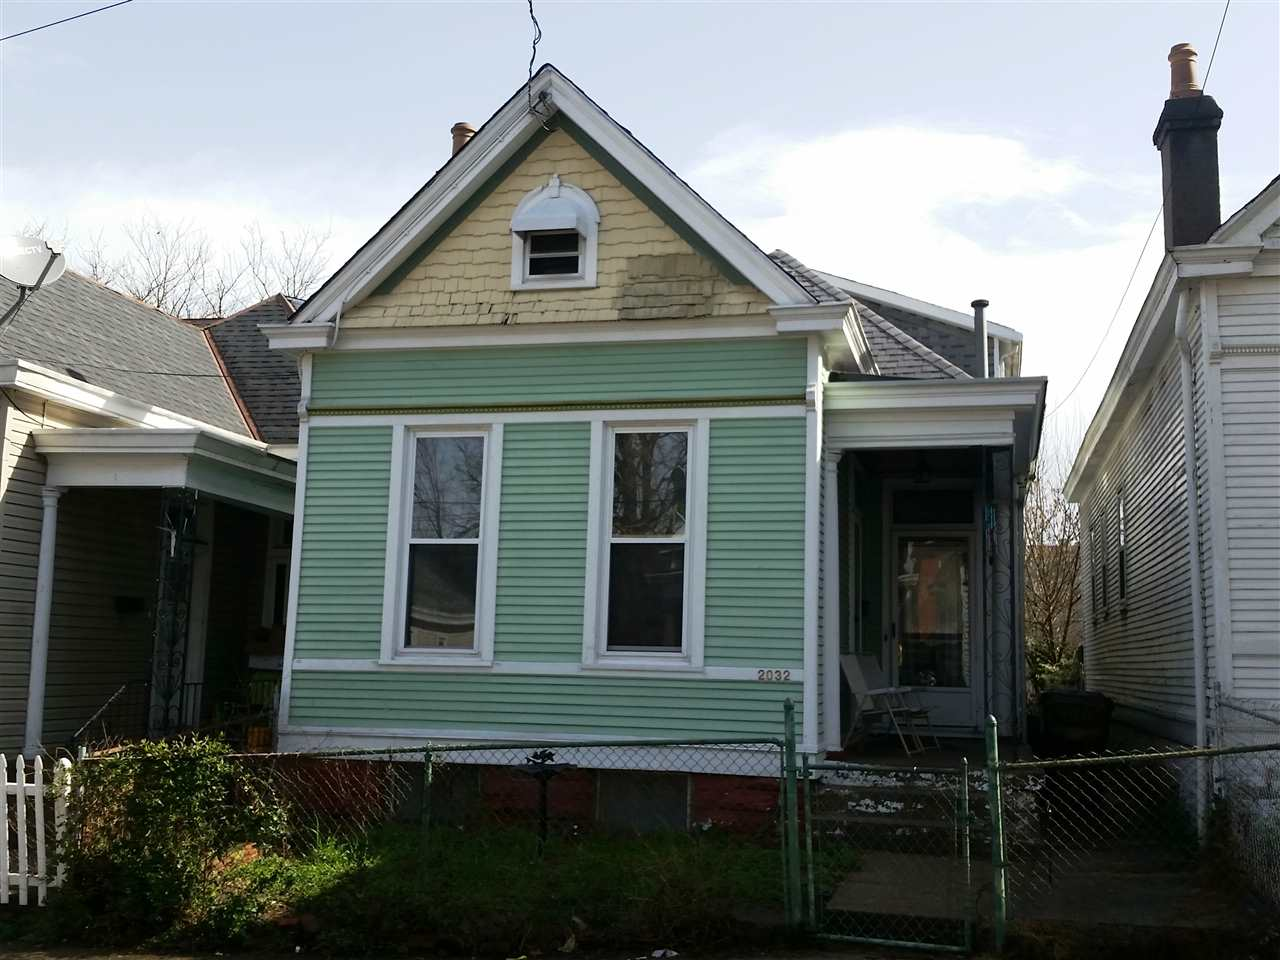 Photo 1 for 2032 Mackoy St Covington, KY 41014